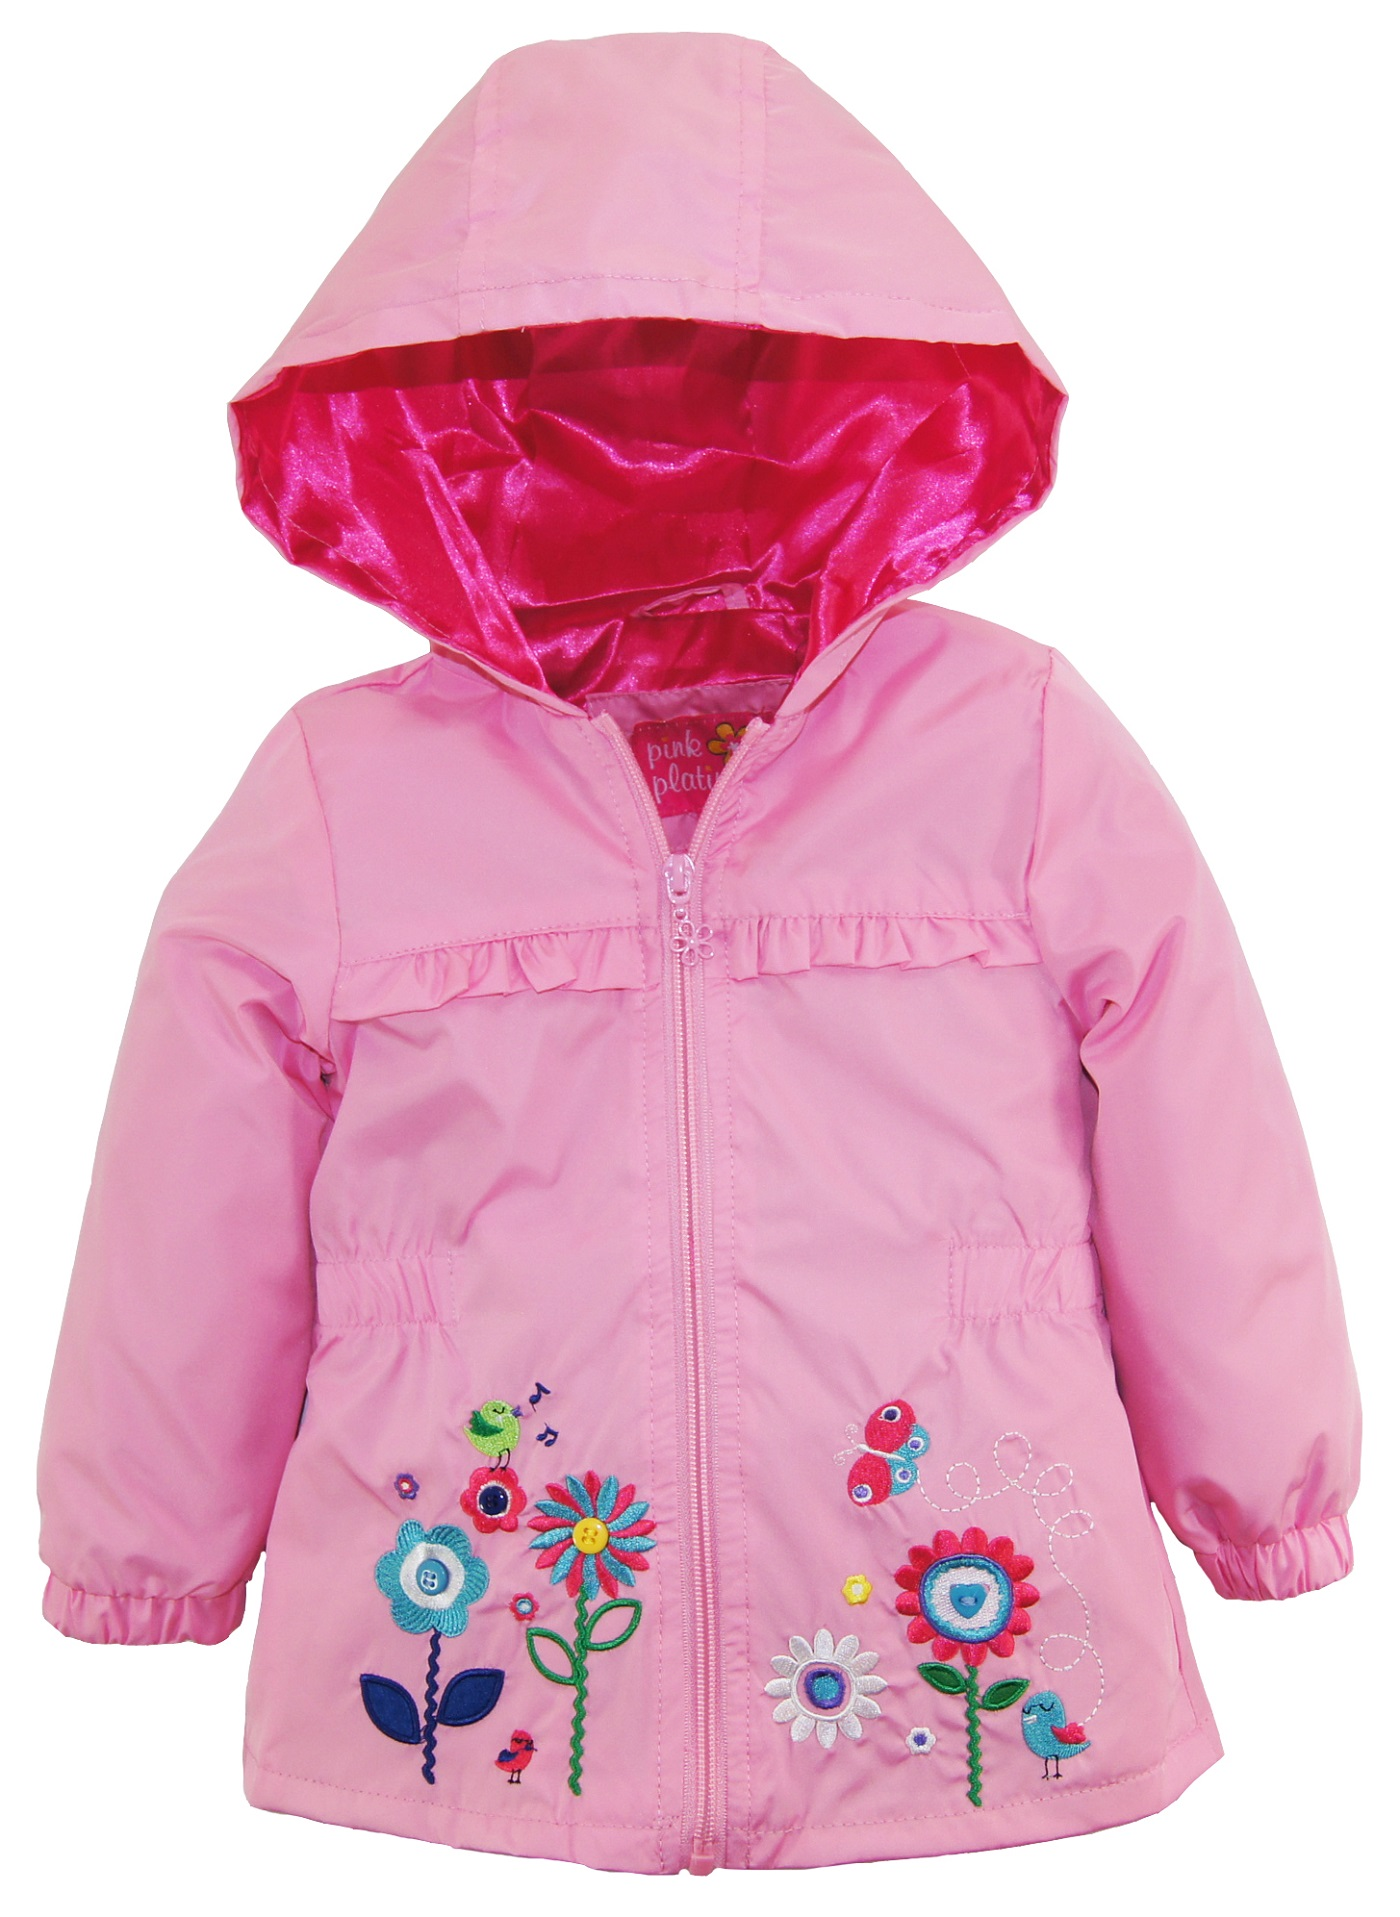 pink camo com baby pin platinum snowsuit amazon girls clothing set